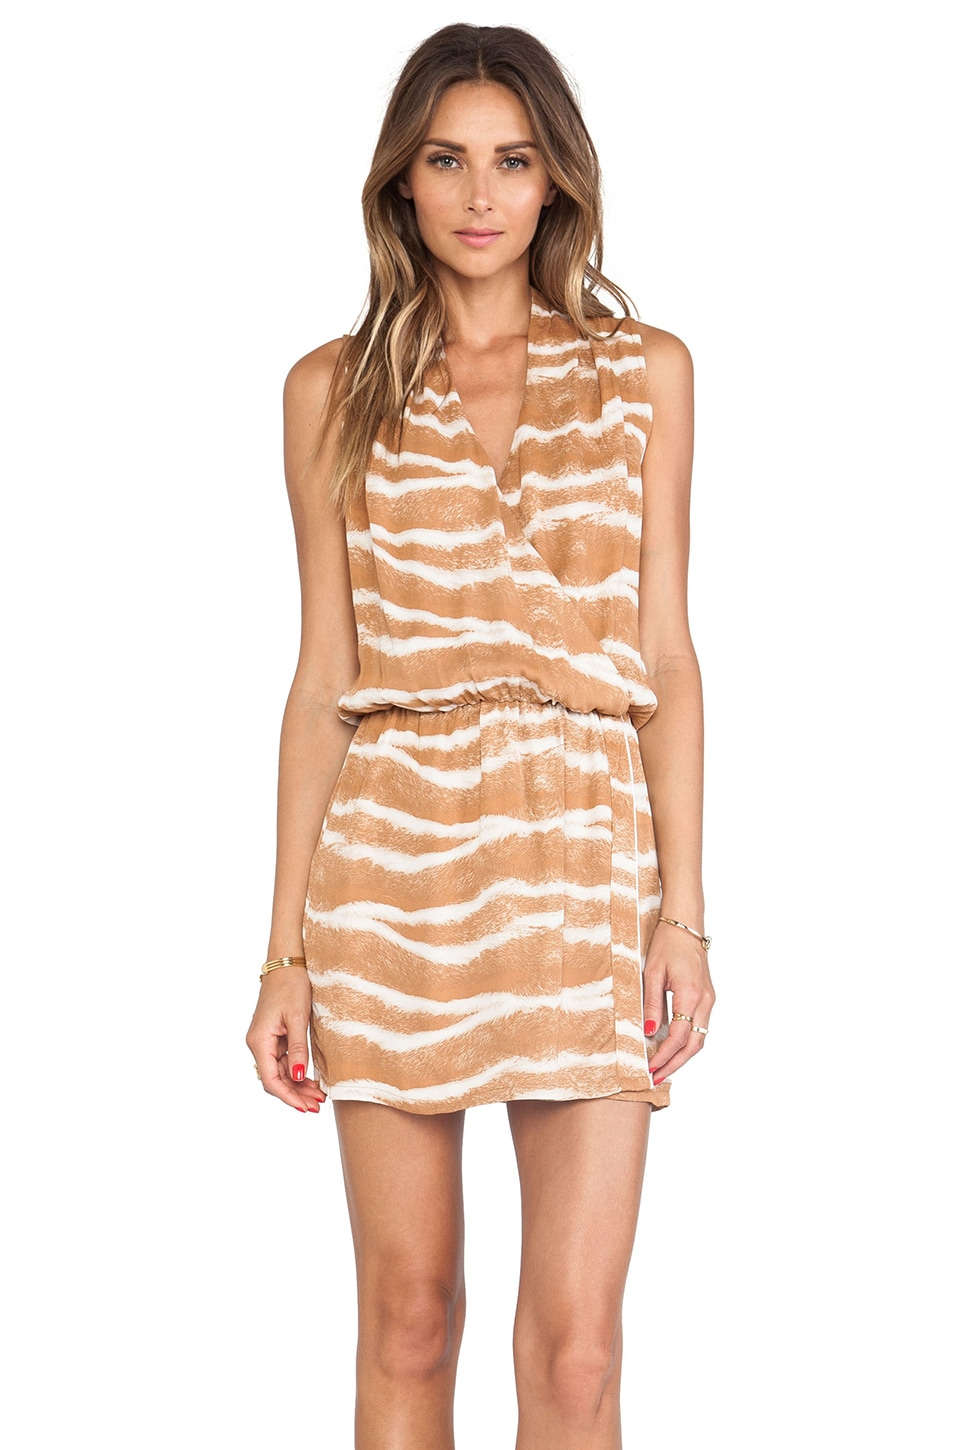 Karina Grimaldi Odella Printed Mini Dress in Light Kenya